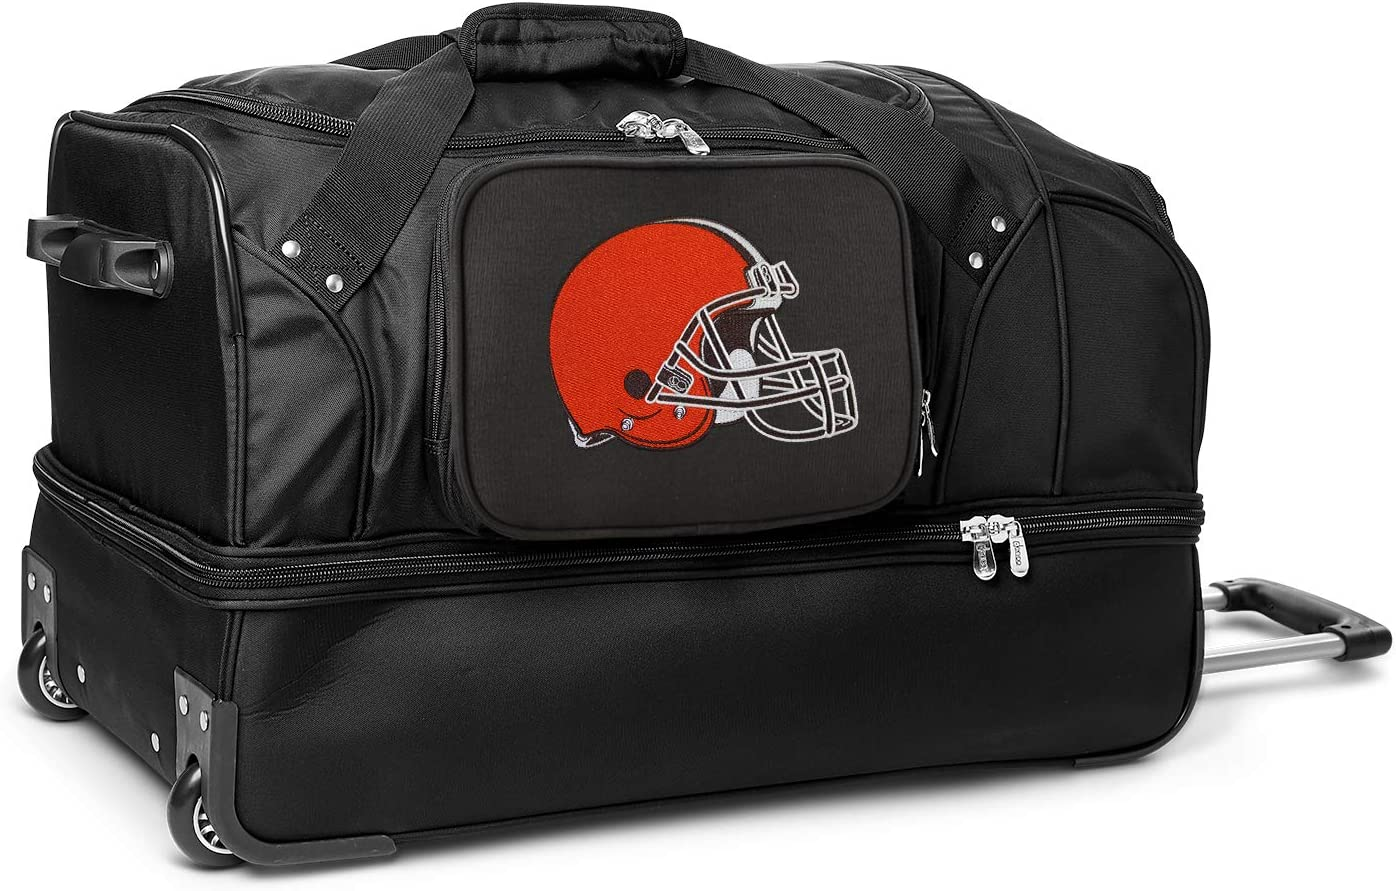 Max 87% OFF Limited time cheap sale NFL Drop Bottom Luggage Rolling Duffel